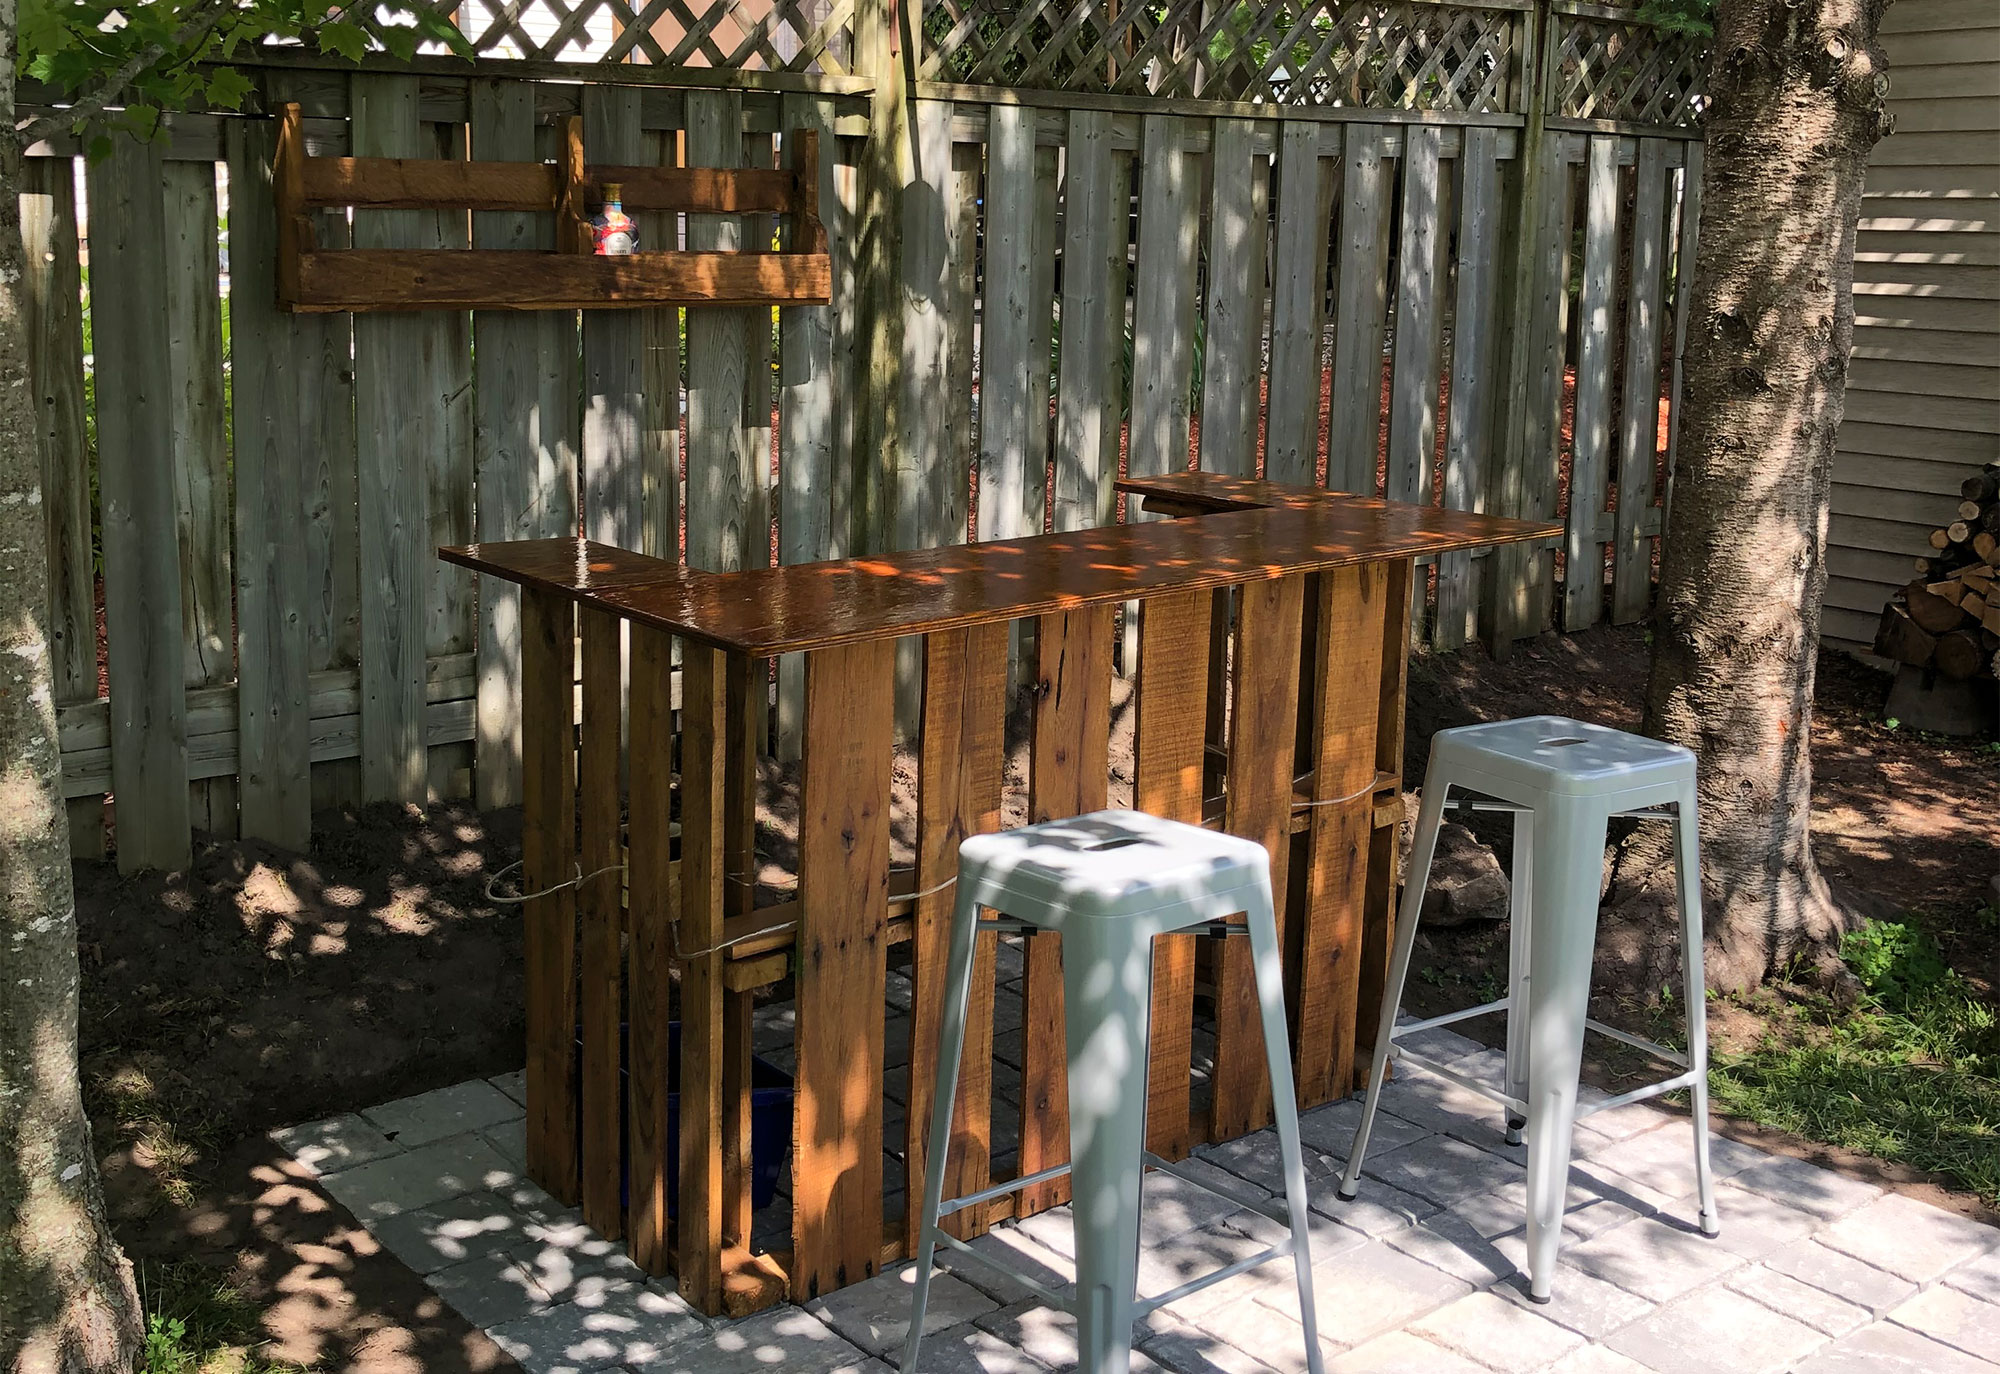 Make a Backyard Bar Using Pallets. Backyard bar made out of pallets with two bar stools in front of it.